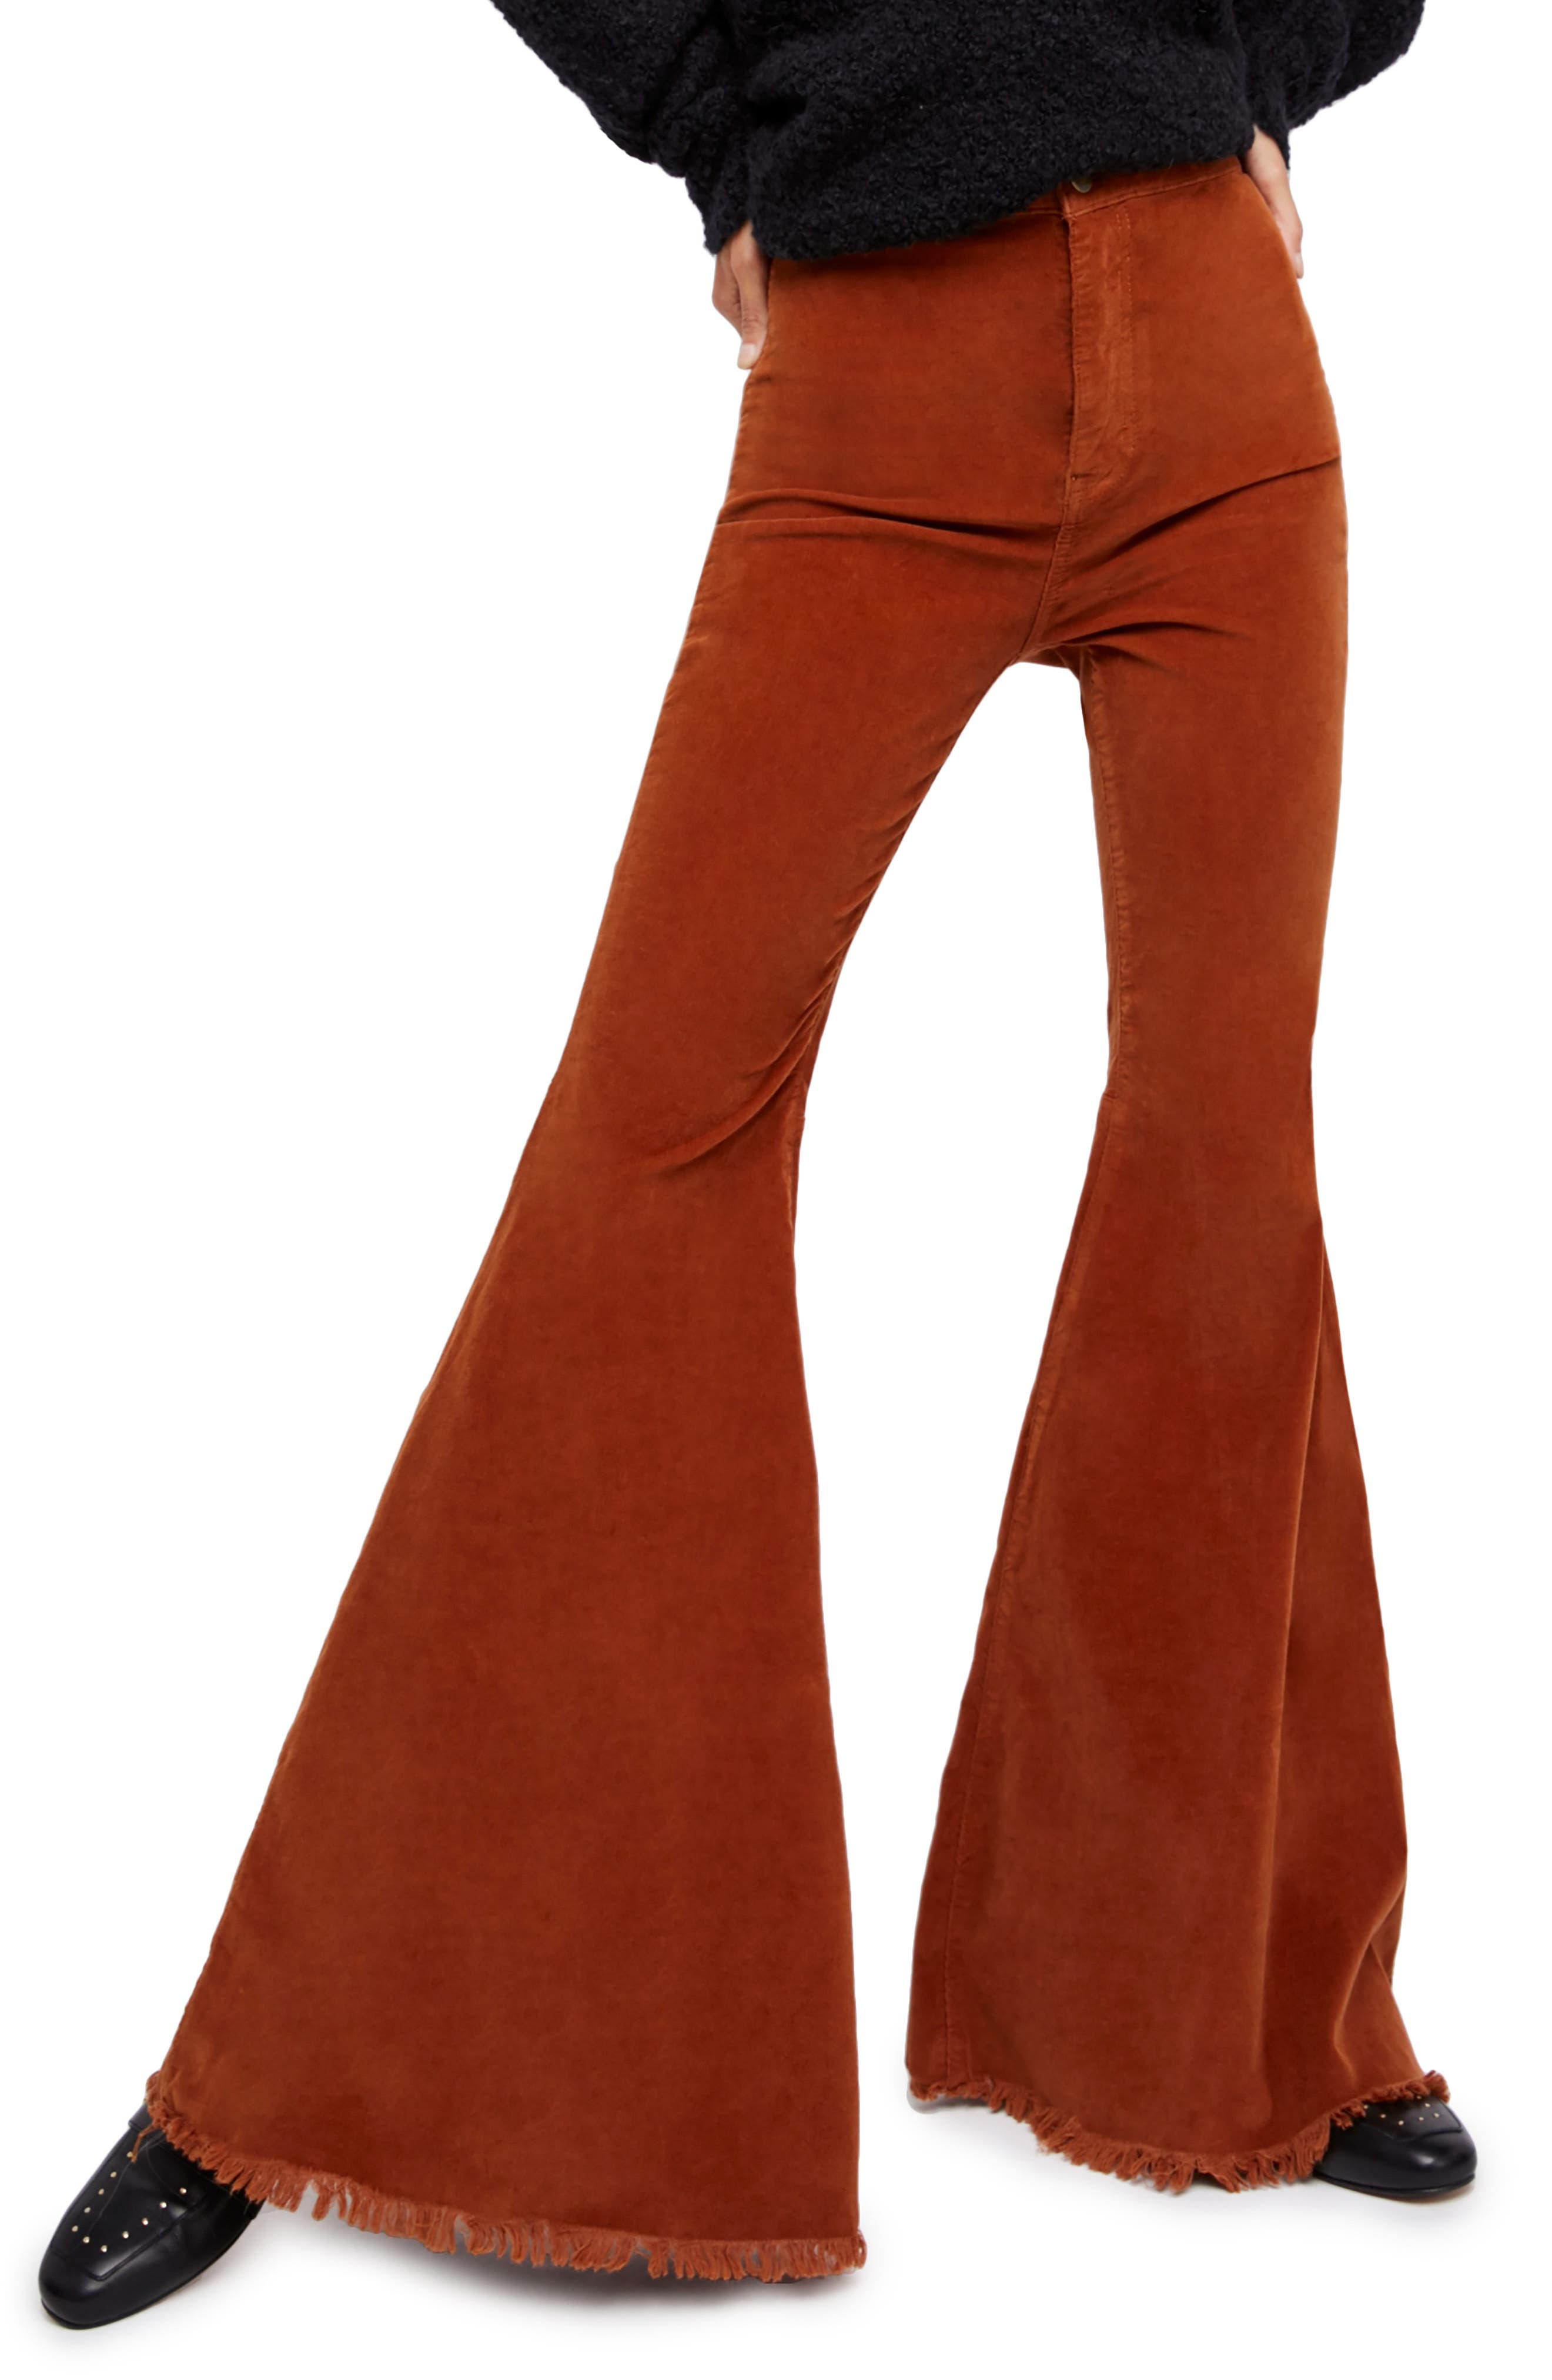 Vintage High Waisted Trousers, Sailor Pants, Jeans Womens Free People Just Float Corduroy Flare Pants $78.00 AT vintagedancer.com